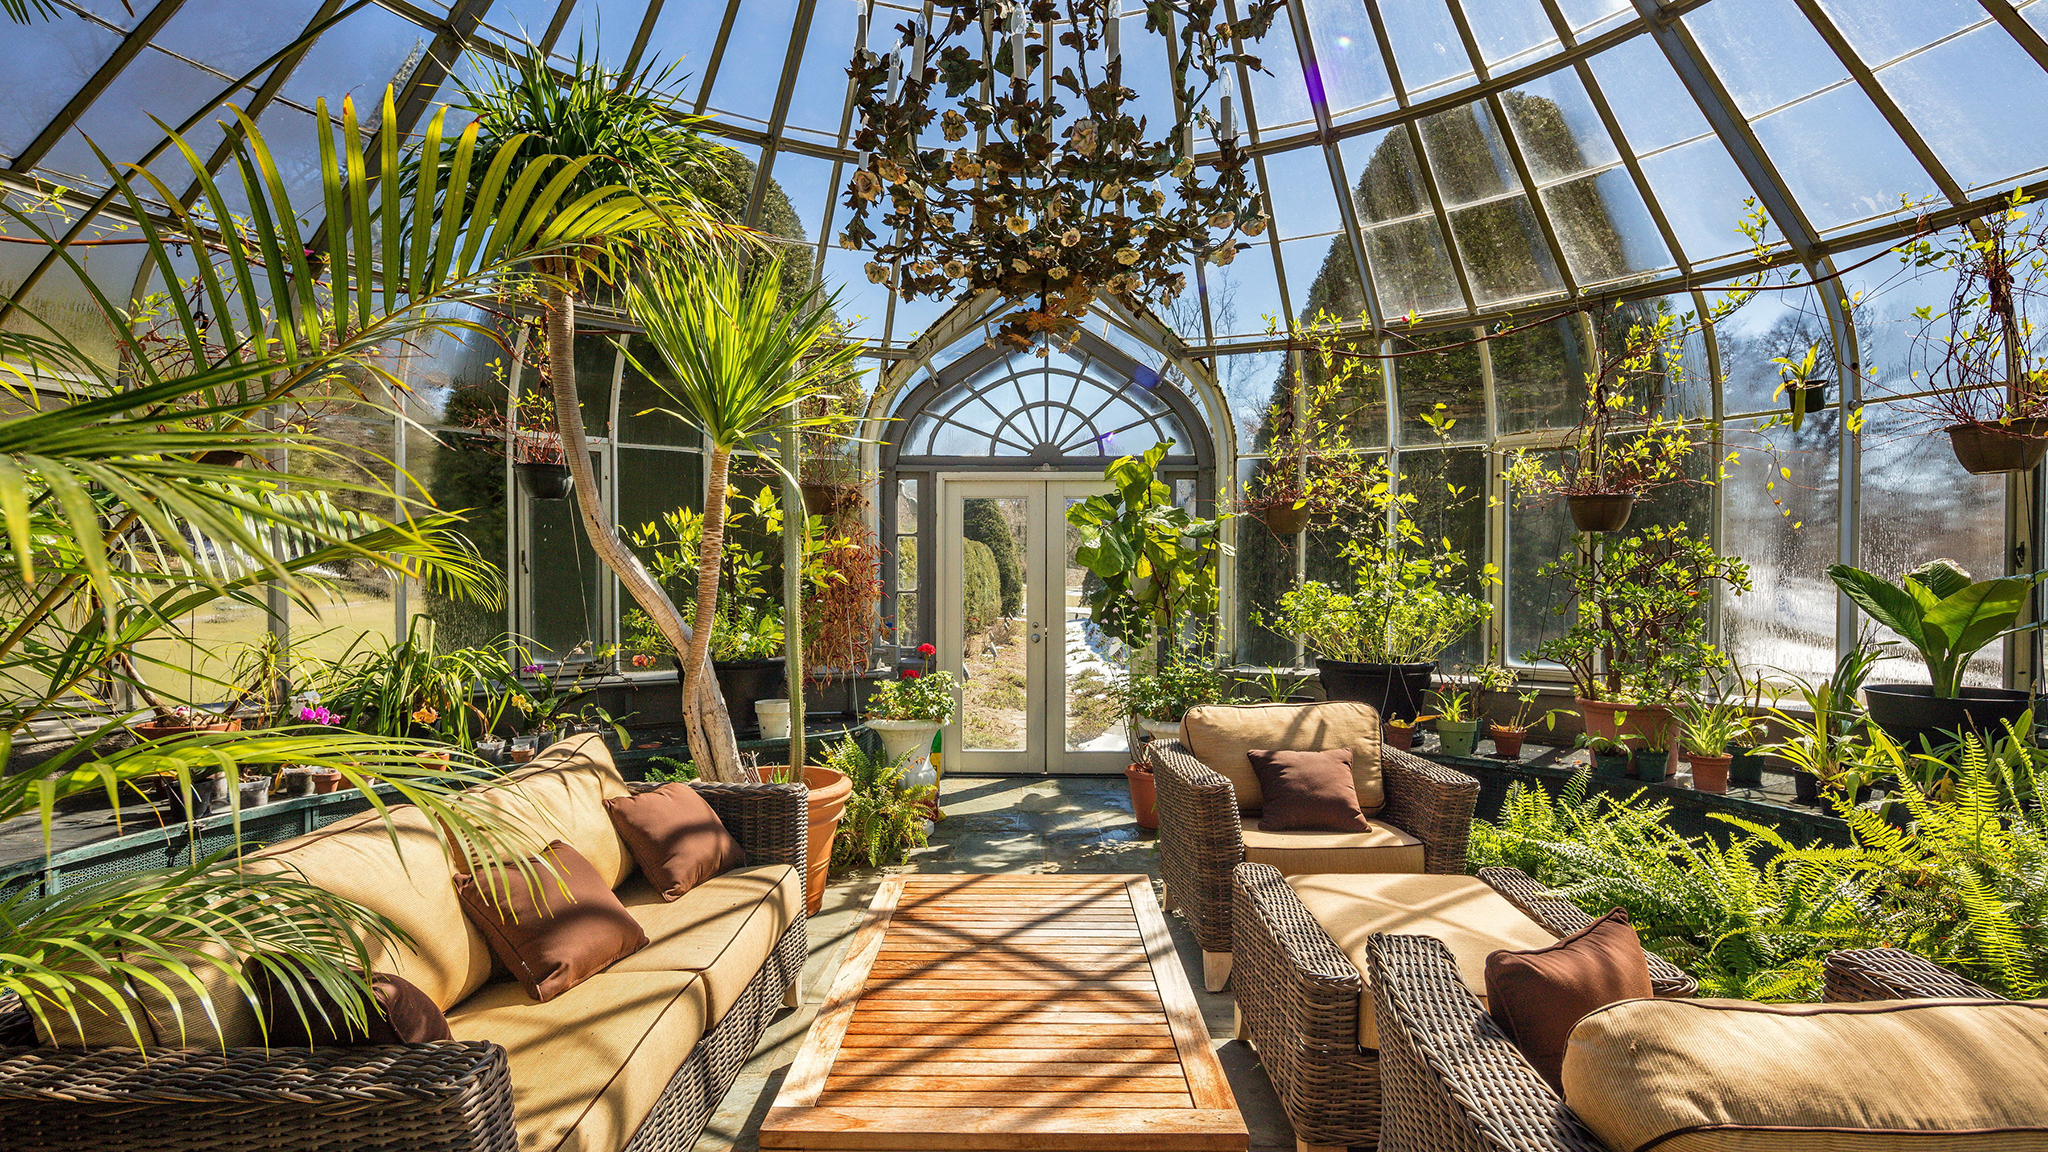 Phenomenal Hot Property Houses With Greenhouses Financial Times Complete Home Design Collection Barbaintelli Responsecom